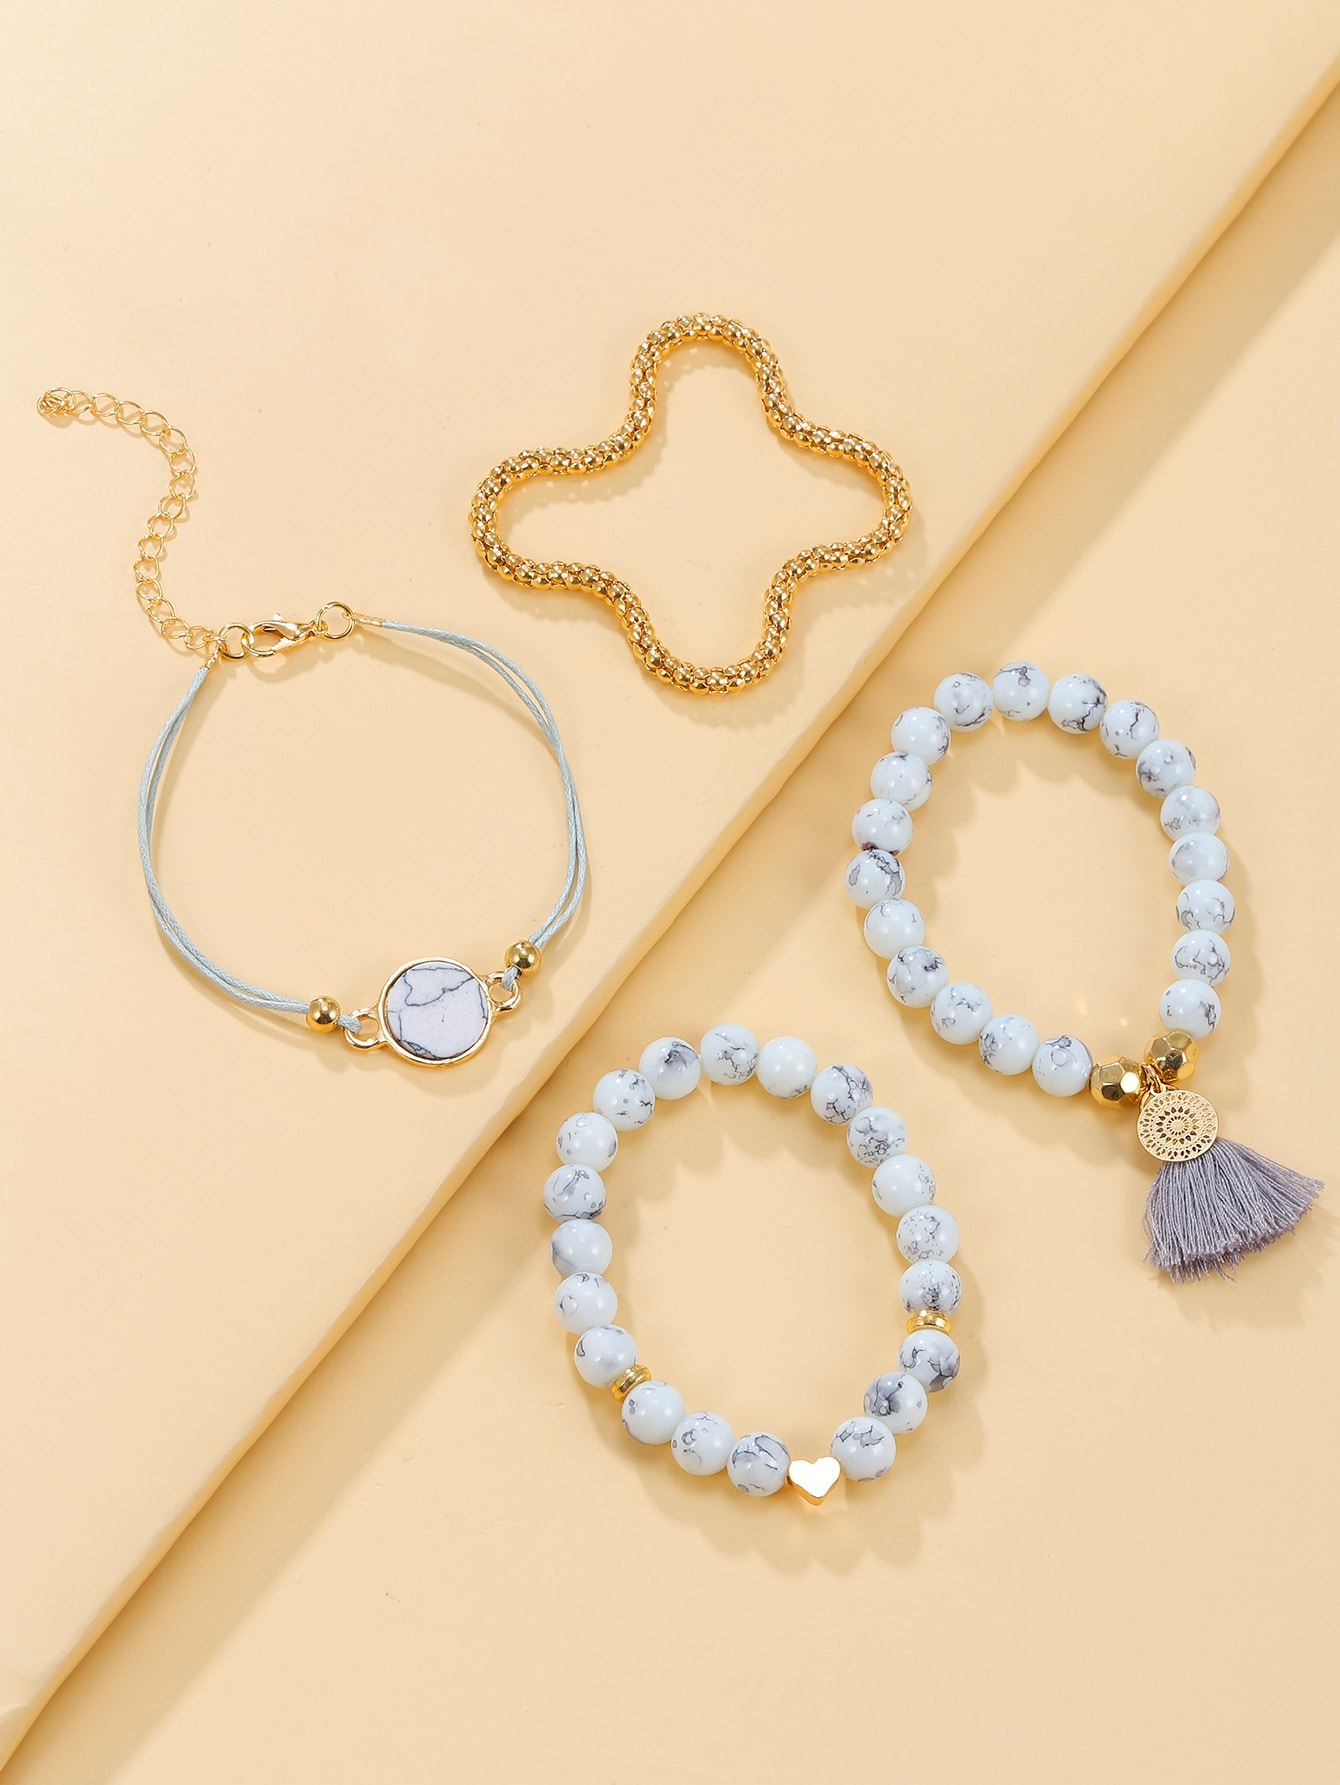 4pcs Heart & Tassel Decor Bracelet thumbnail